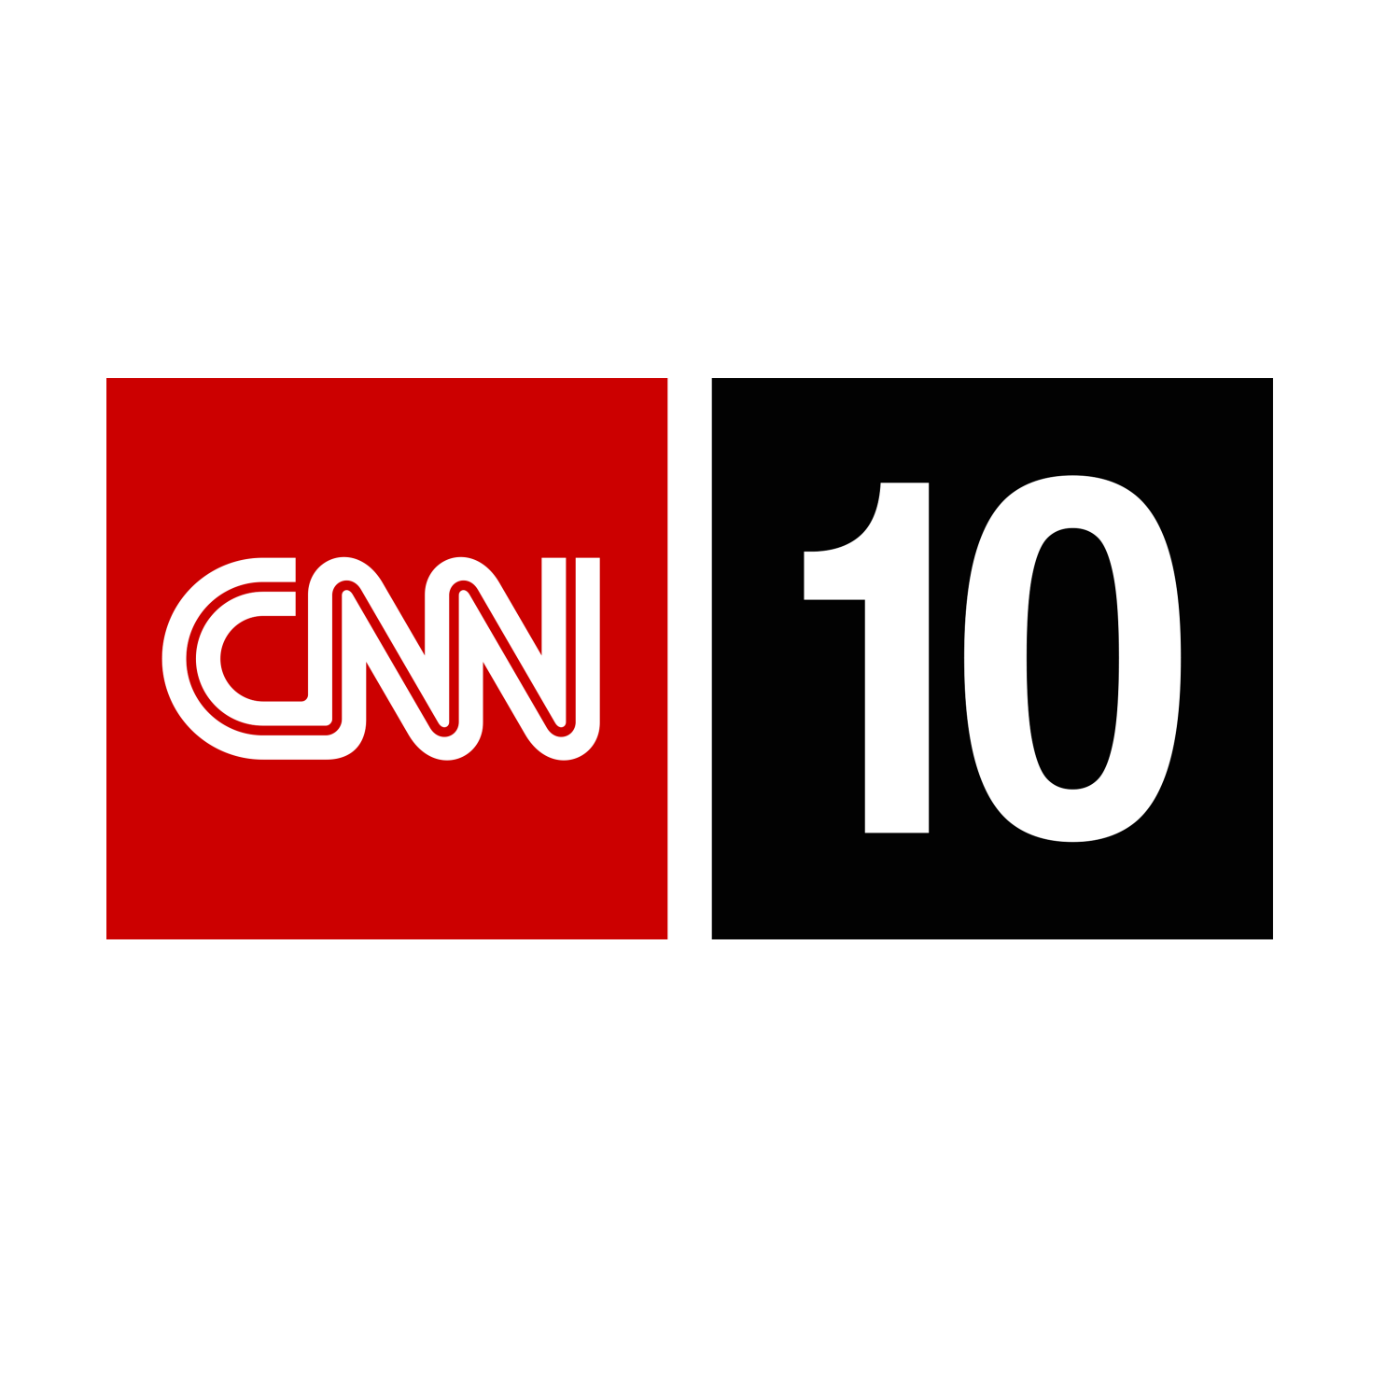 CNN Student News - May 21, 2013